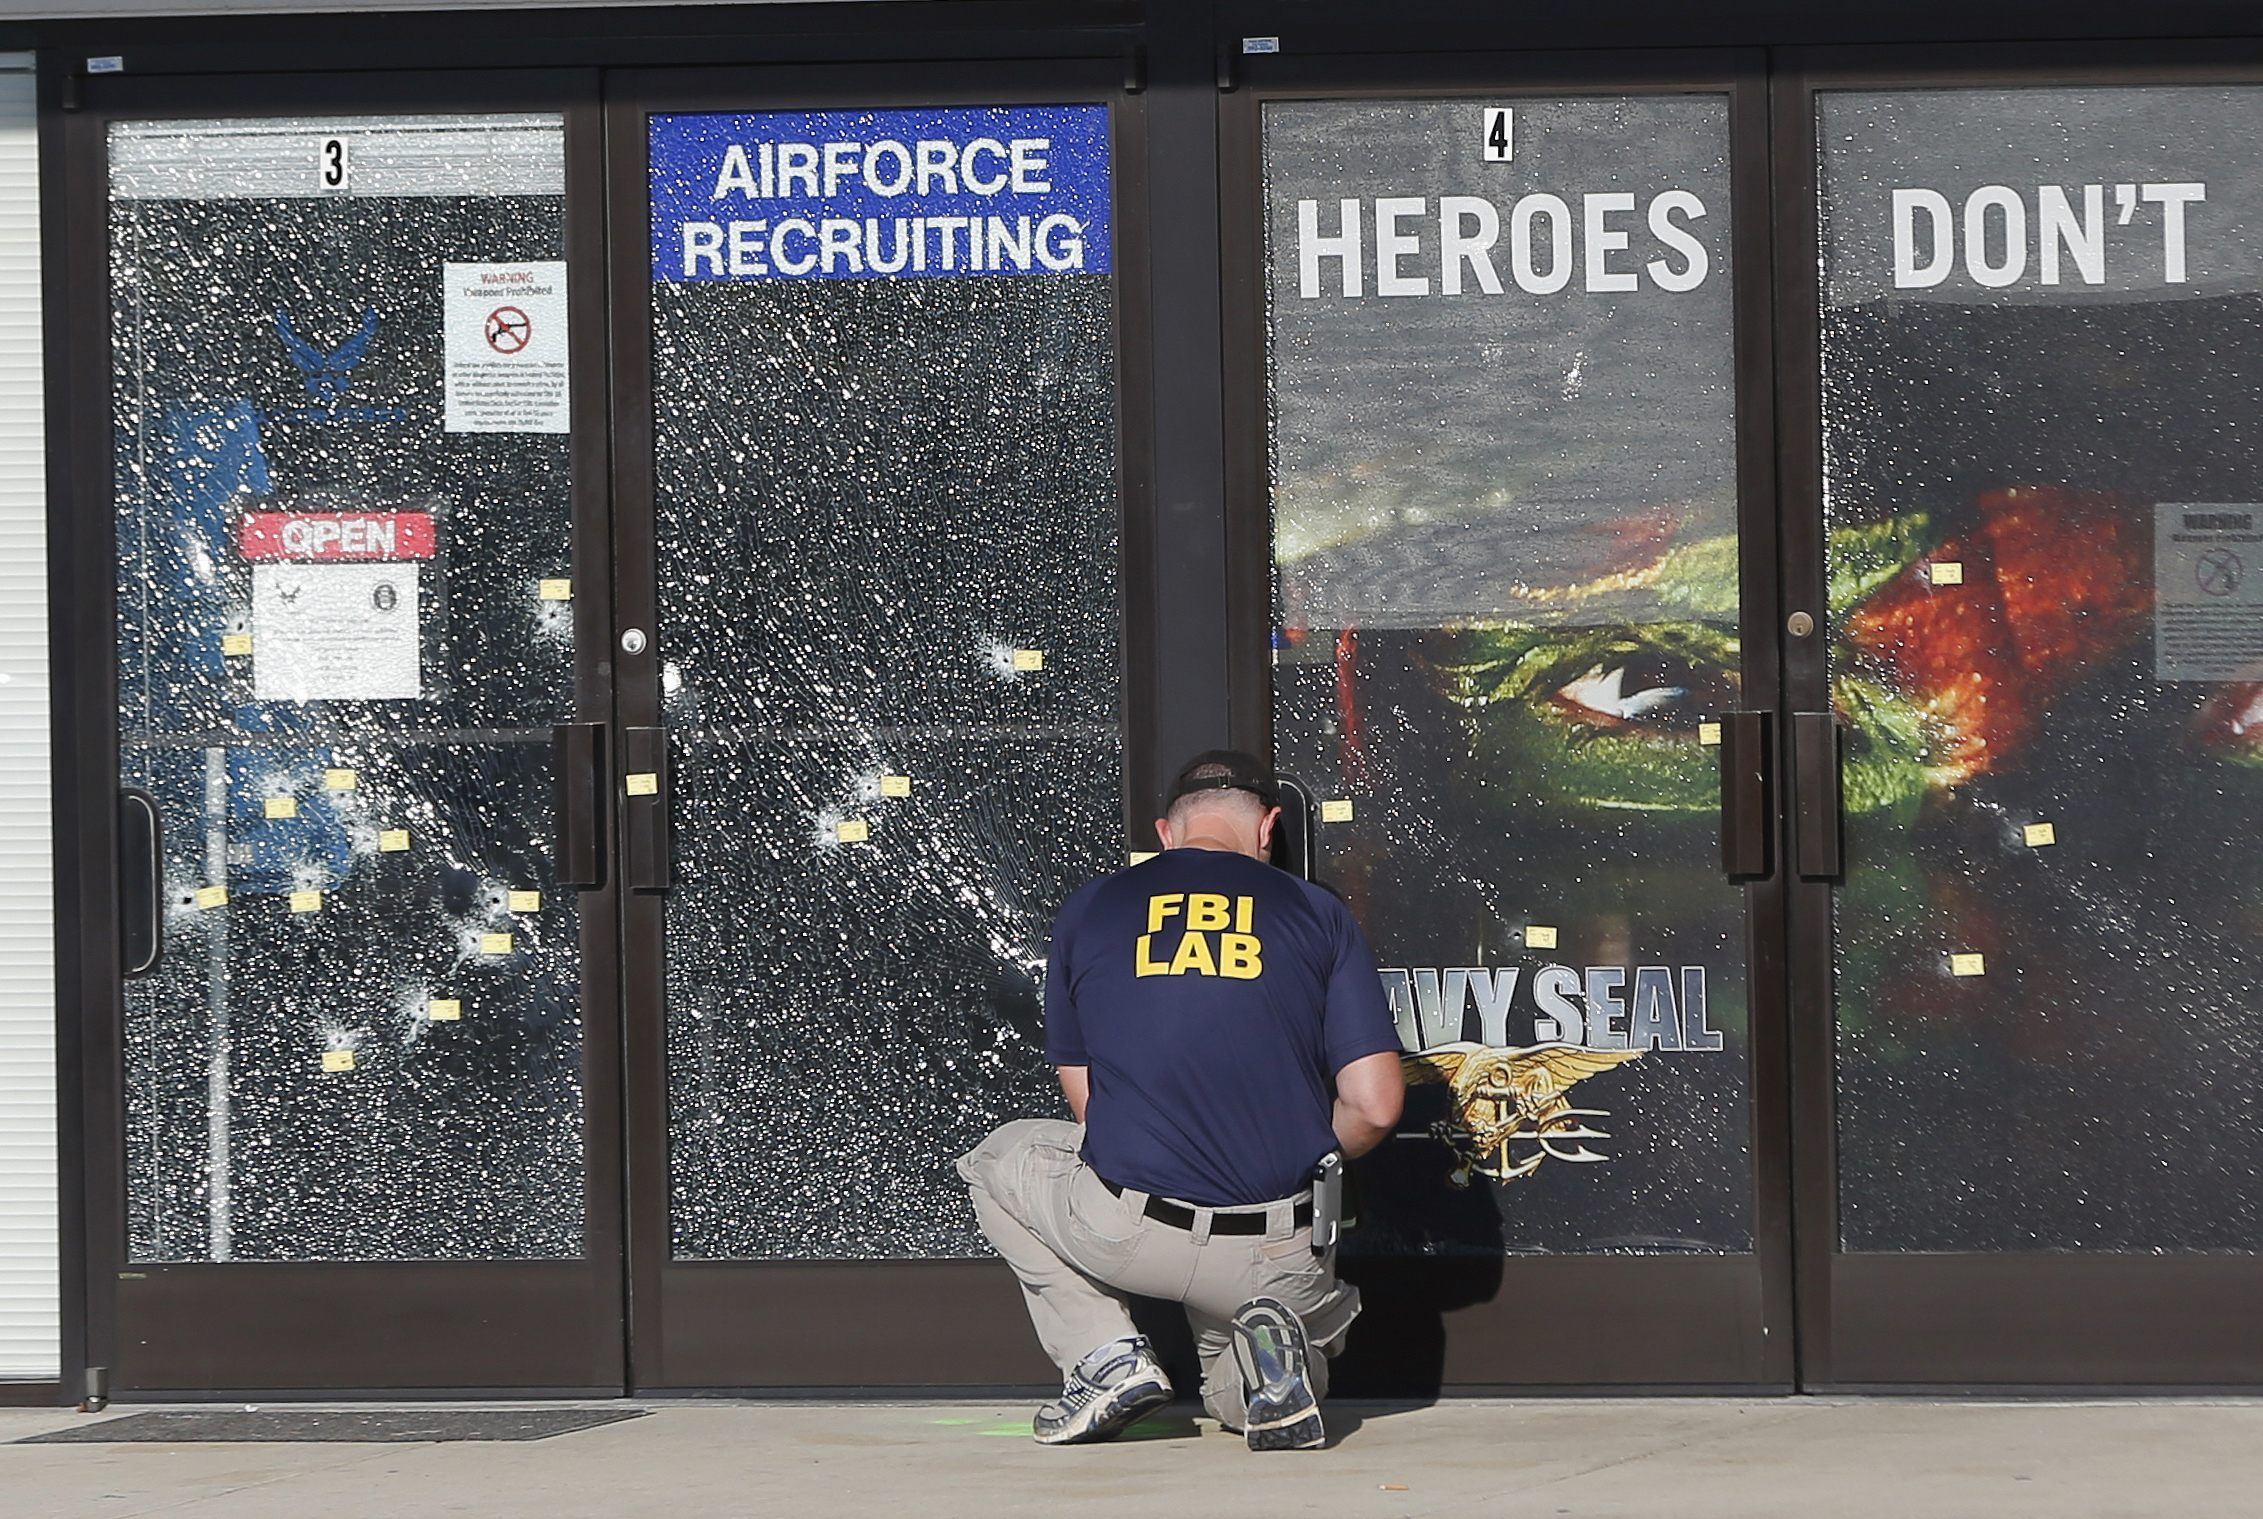 Navy Commander Confirms He Fired at Mohammad Abdulazeez with His 'Personal Weapon'